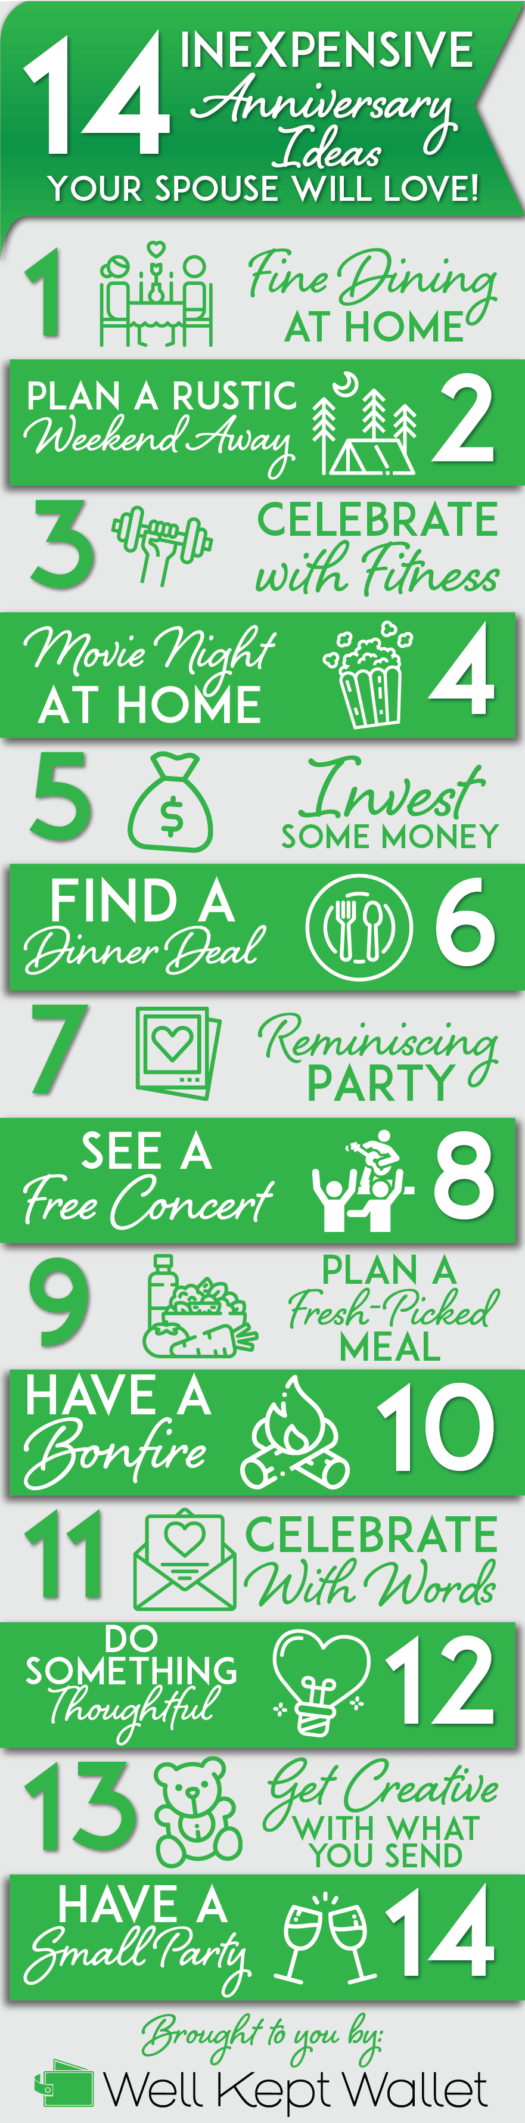 Inexpensive anniversary gifts infographic pinterest pin